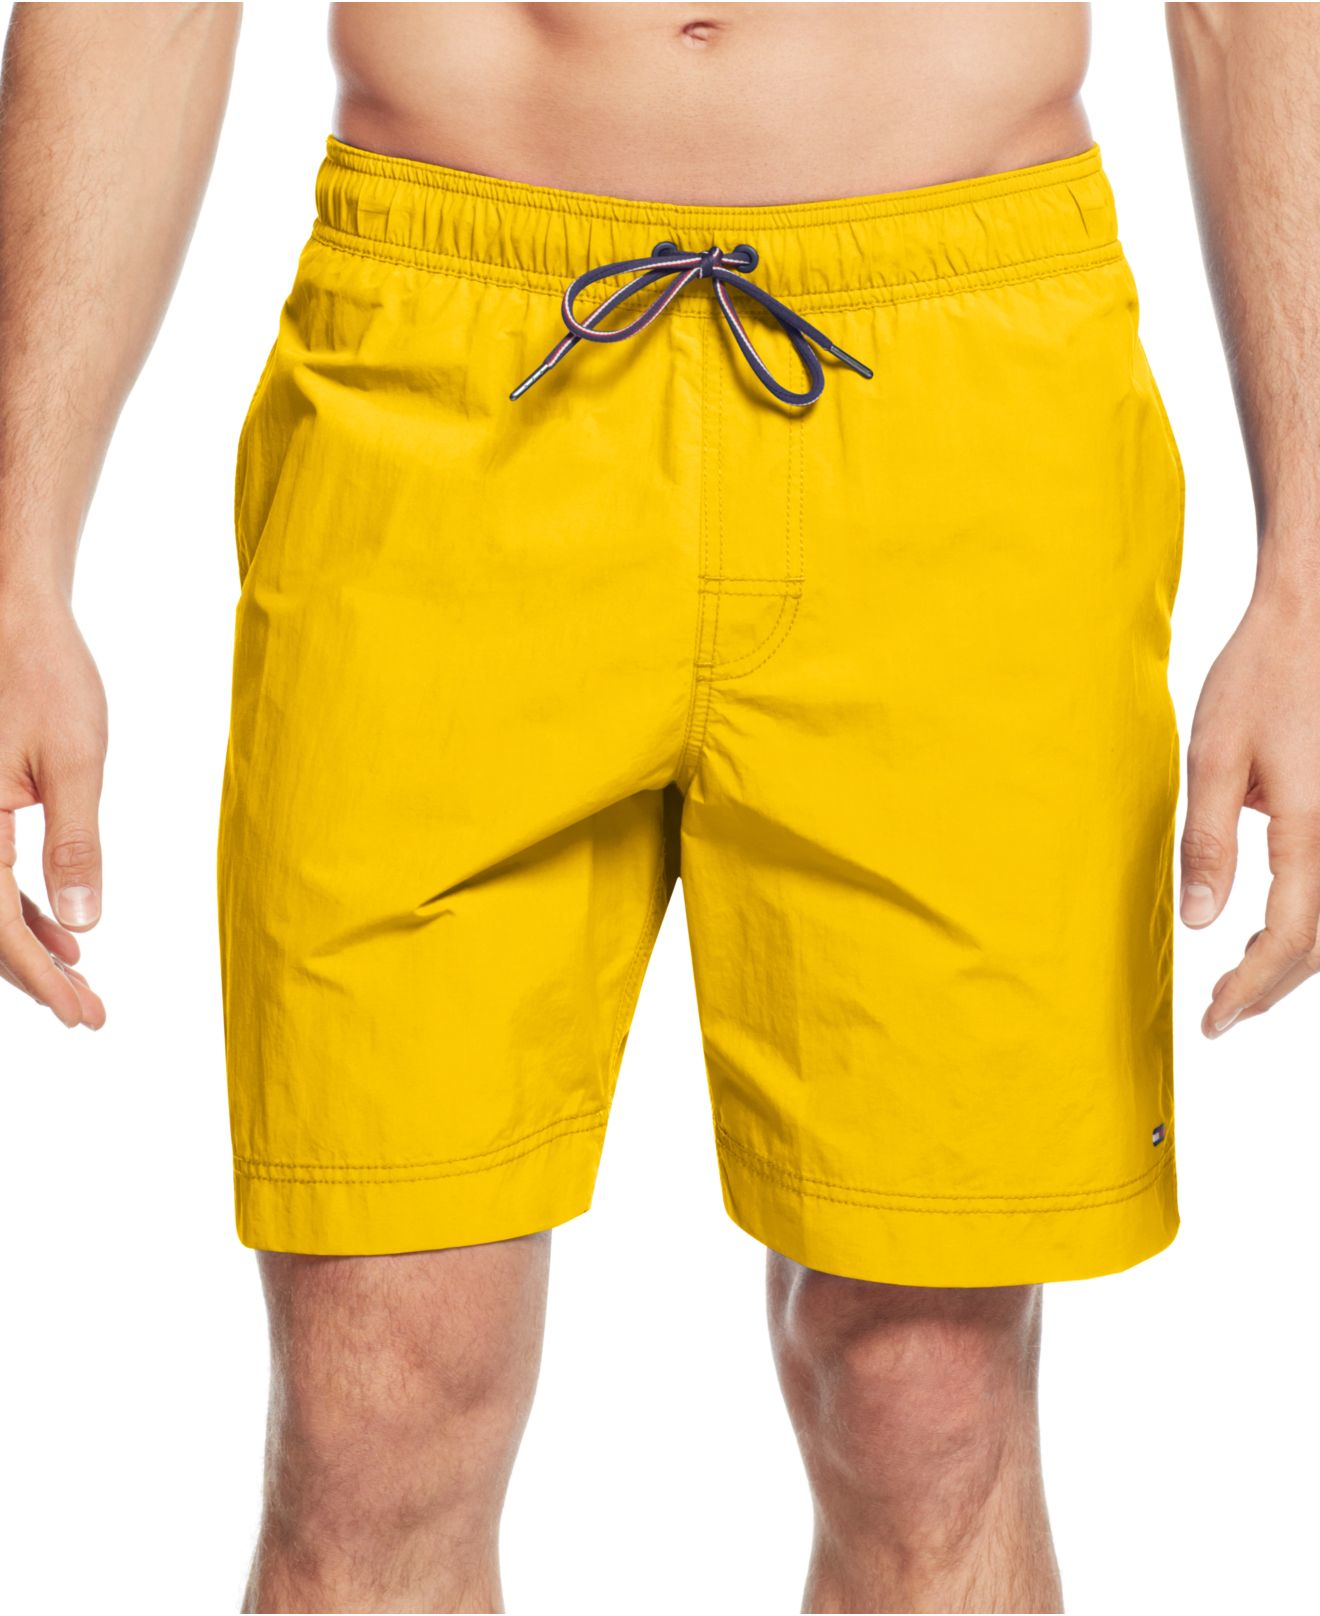 c4729acd33 Tommy Hilfiger Tommy Swim Trunks in Yellow for Men - Lyst